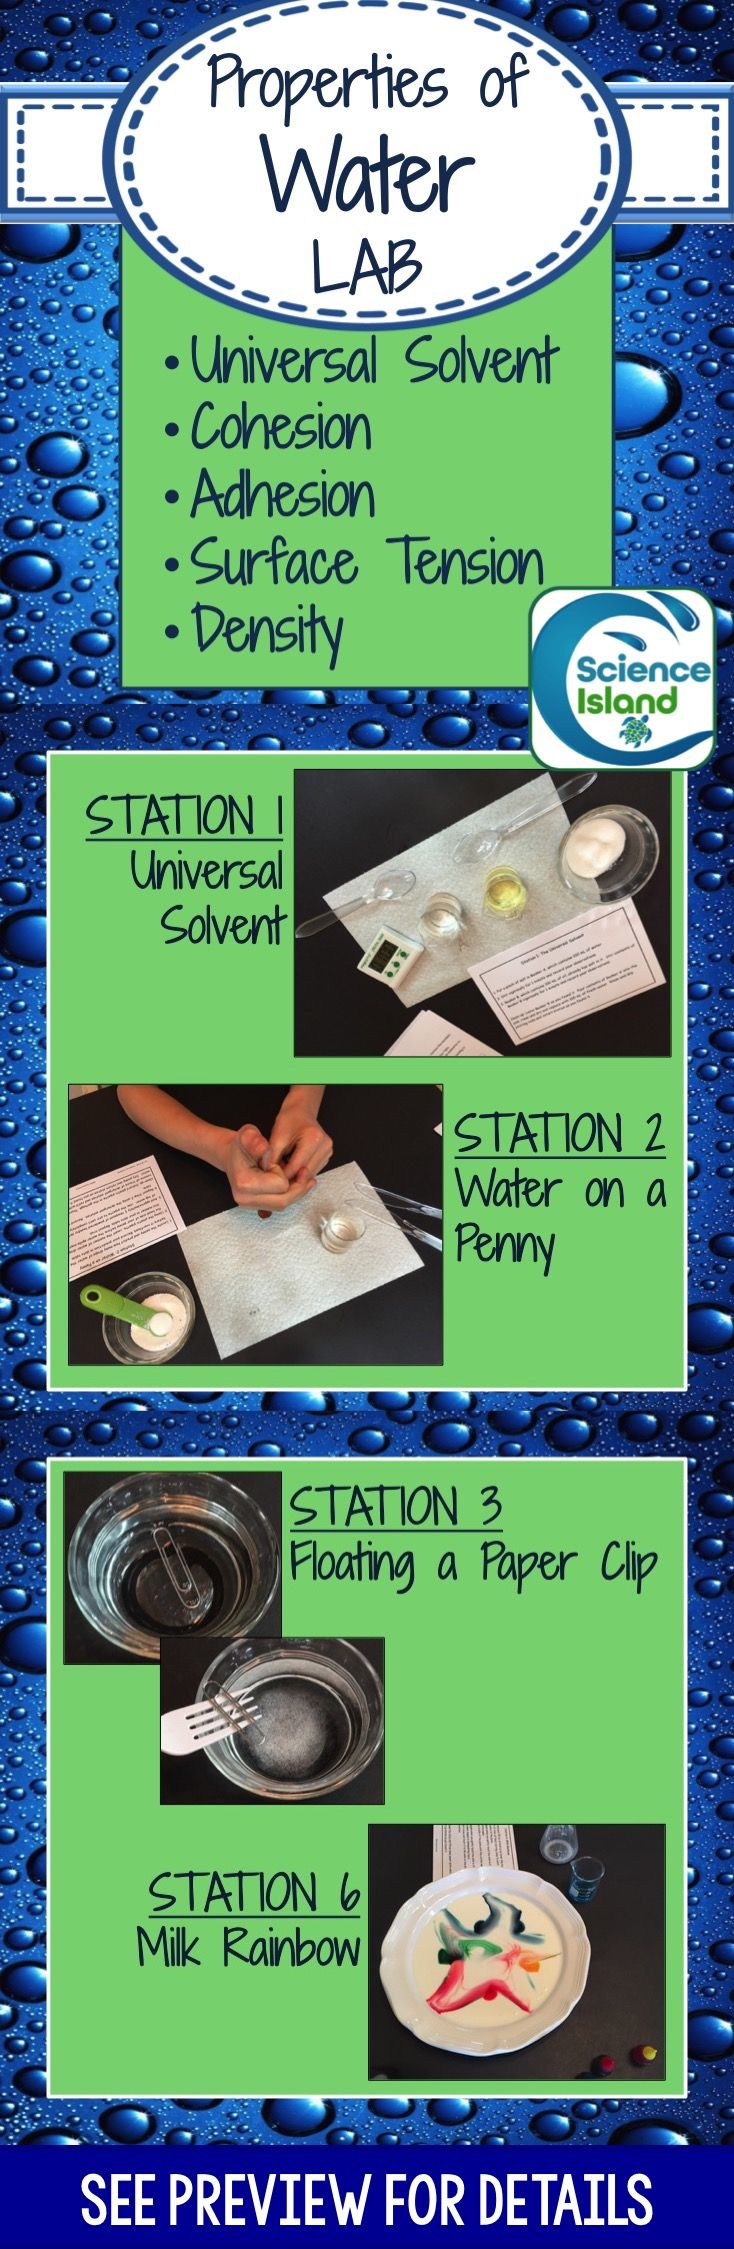 Students will rotate through seven different stations during this lab to discover the unique properties of water including surface tension, cohesion and adhesion, polarity, density, capillary action and water's role as the universal solvent. Also provides students with opportunities to practice laboratory procedures and become more familiar with common lab equipment.